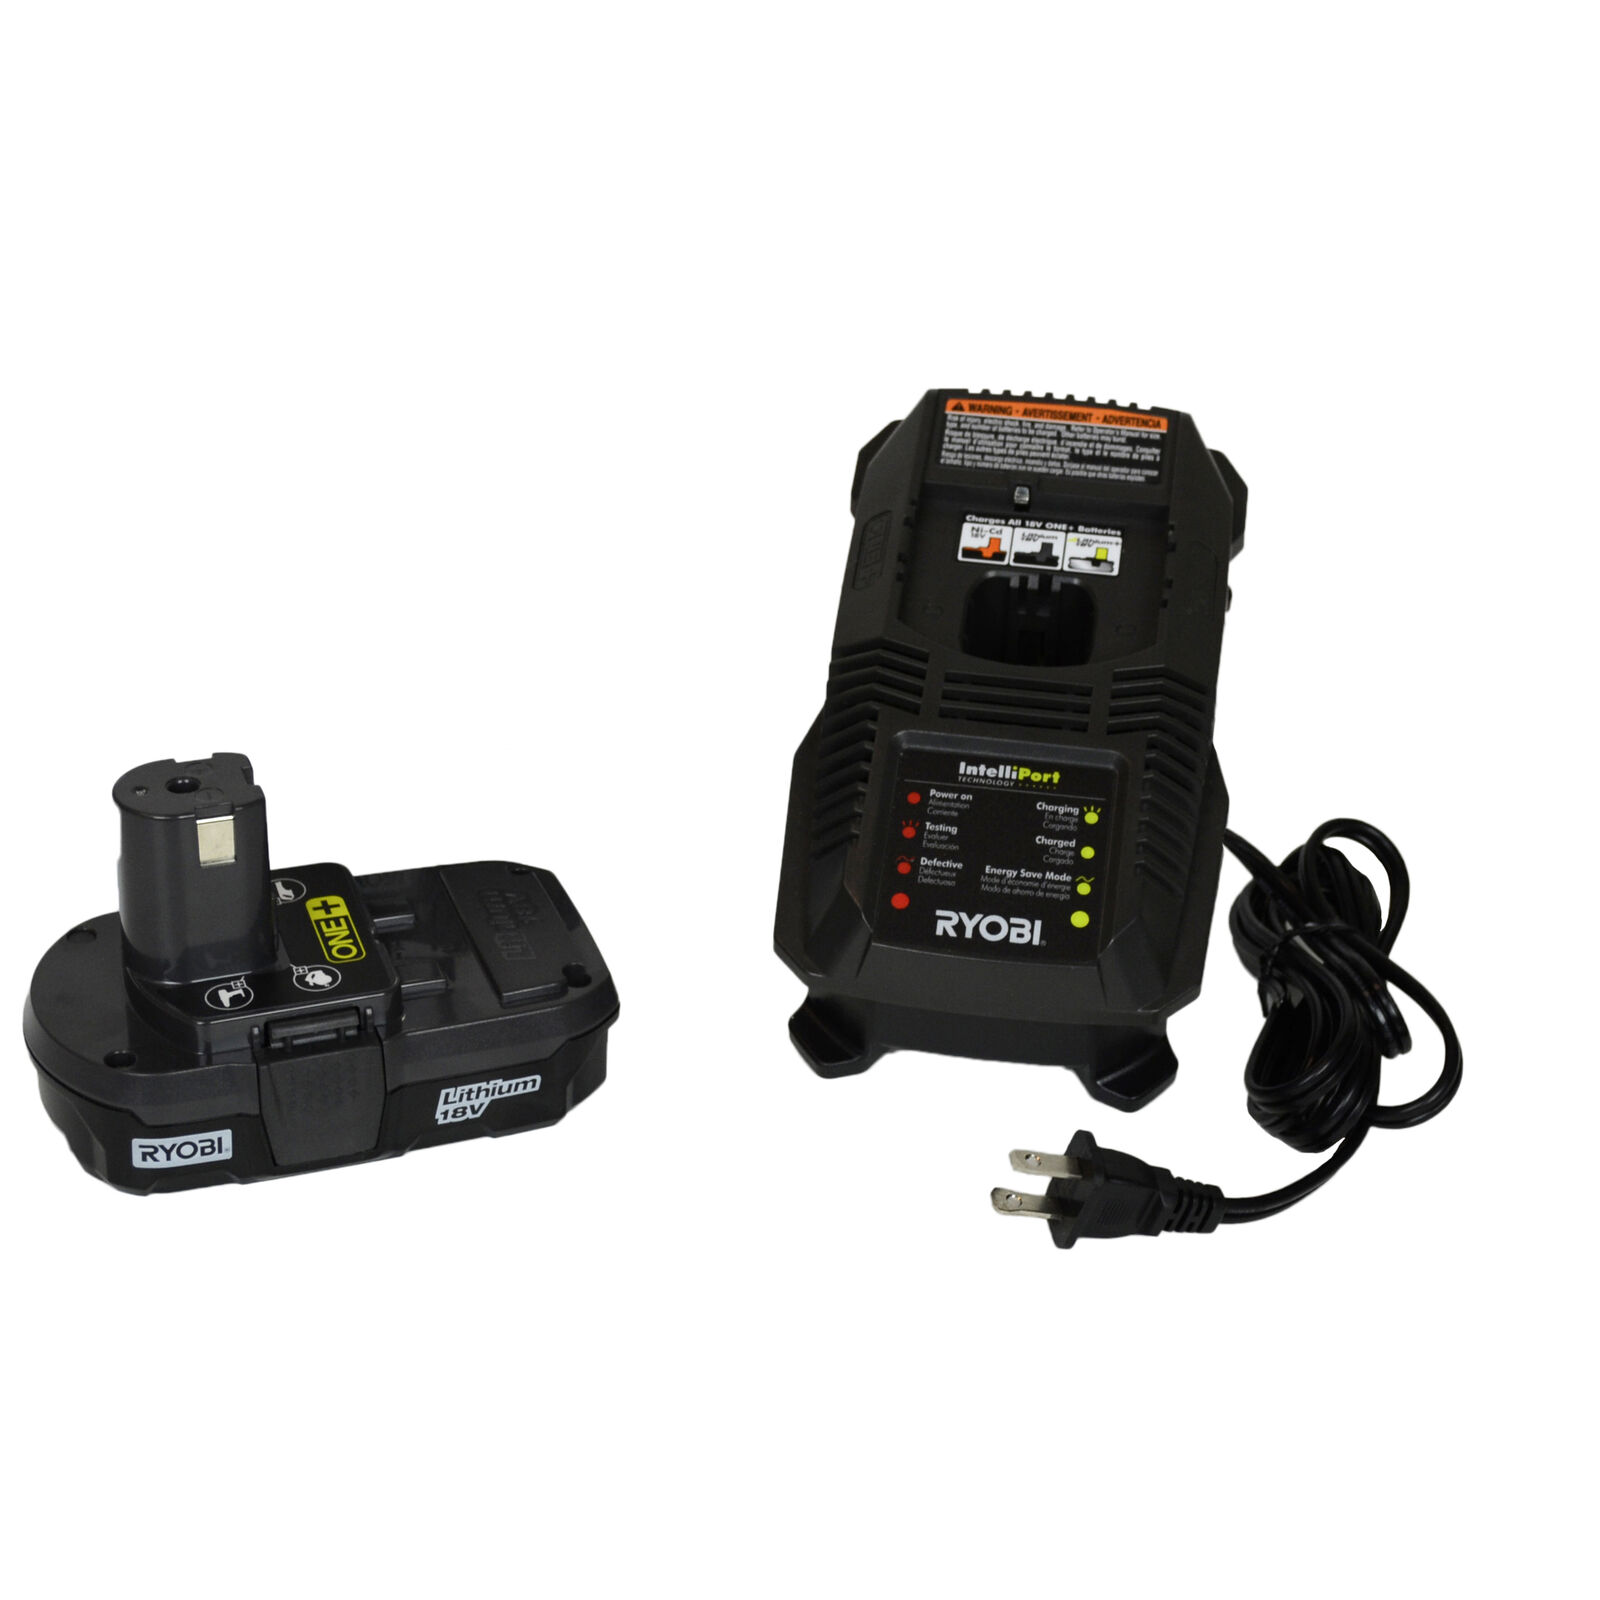 Ryobi P118 18V Lithium-Ion Battery Charger & One P102 18V Compact Battery